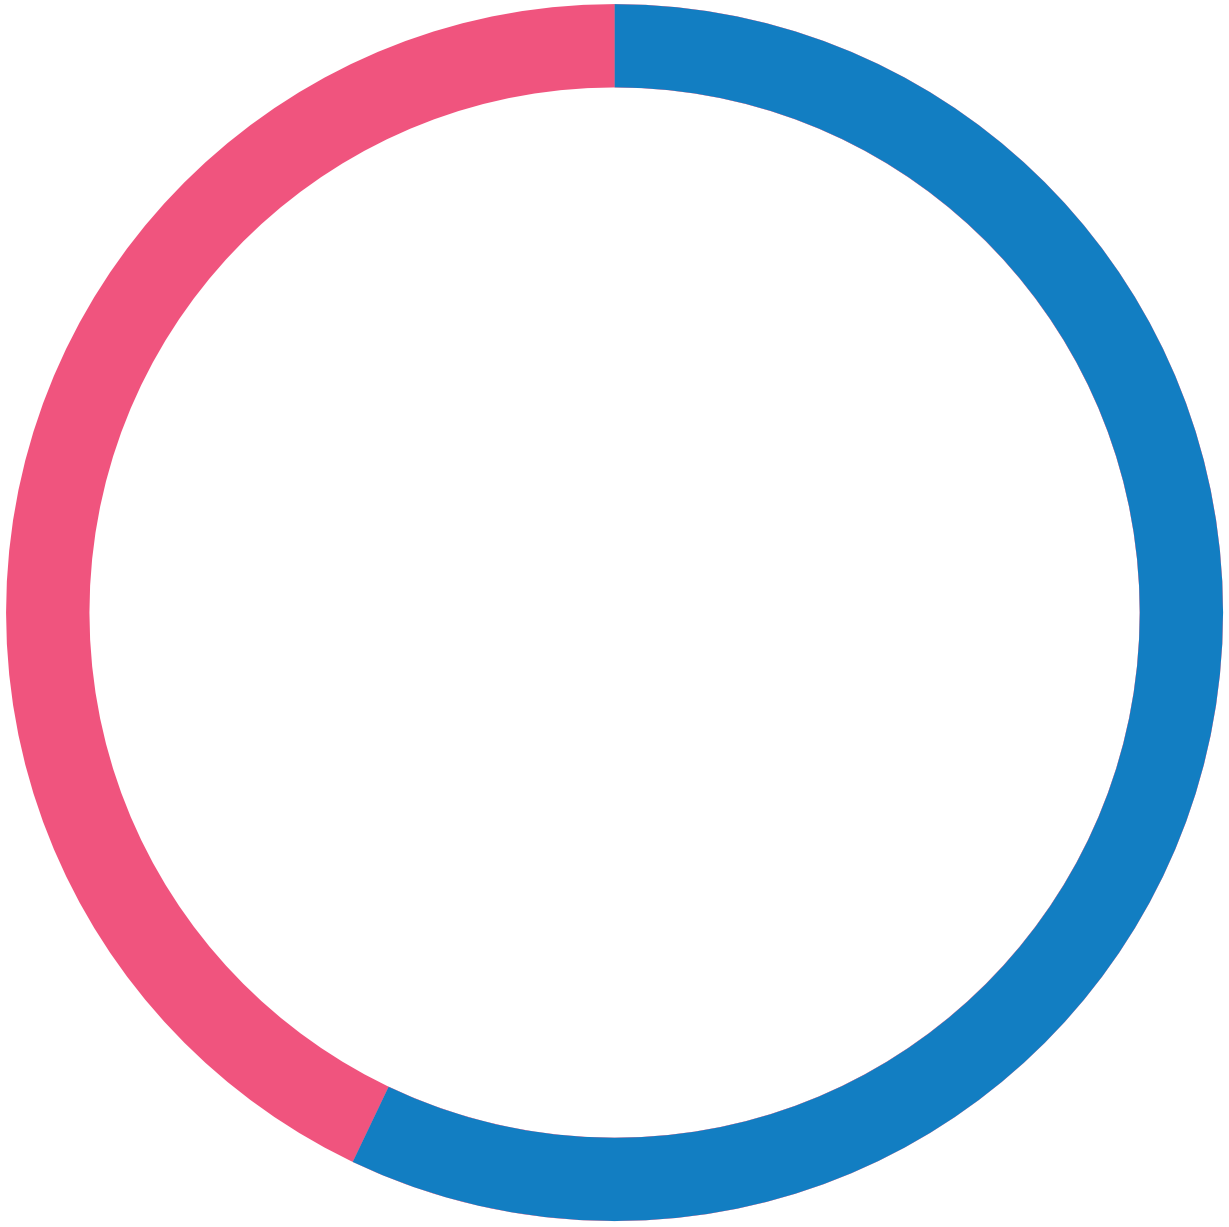 round pink and blue logo